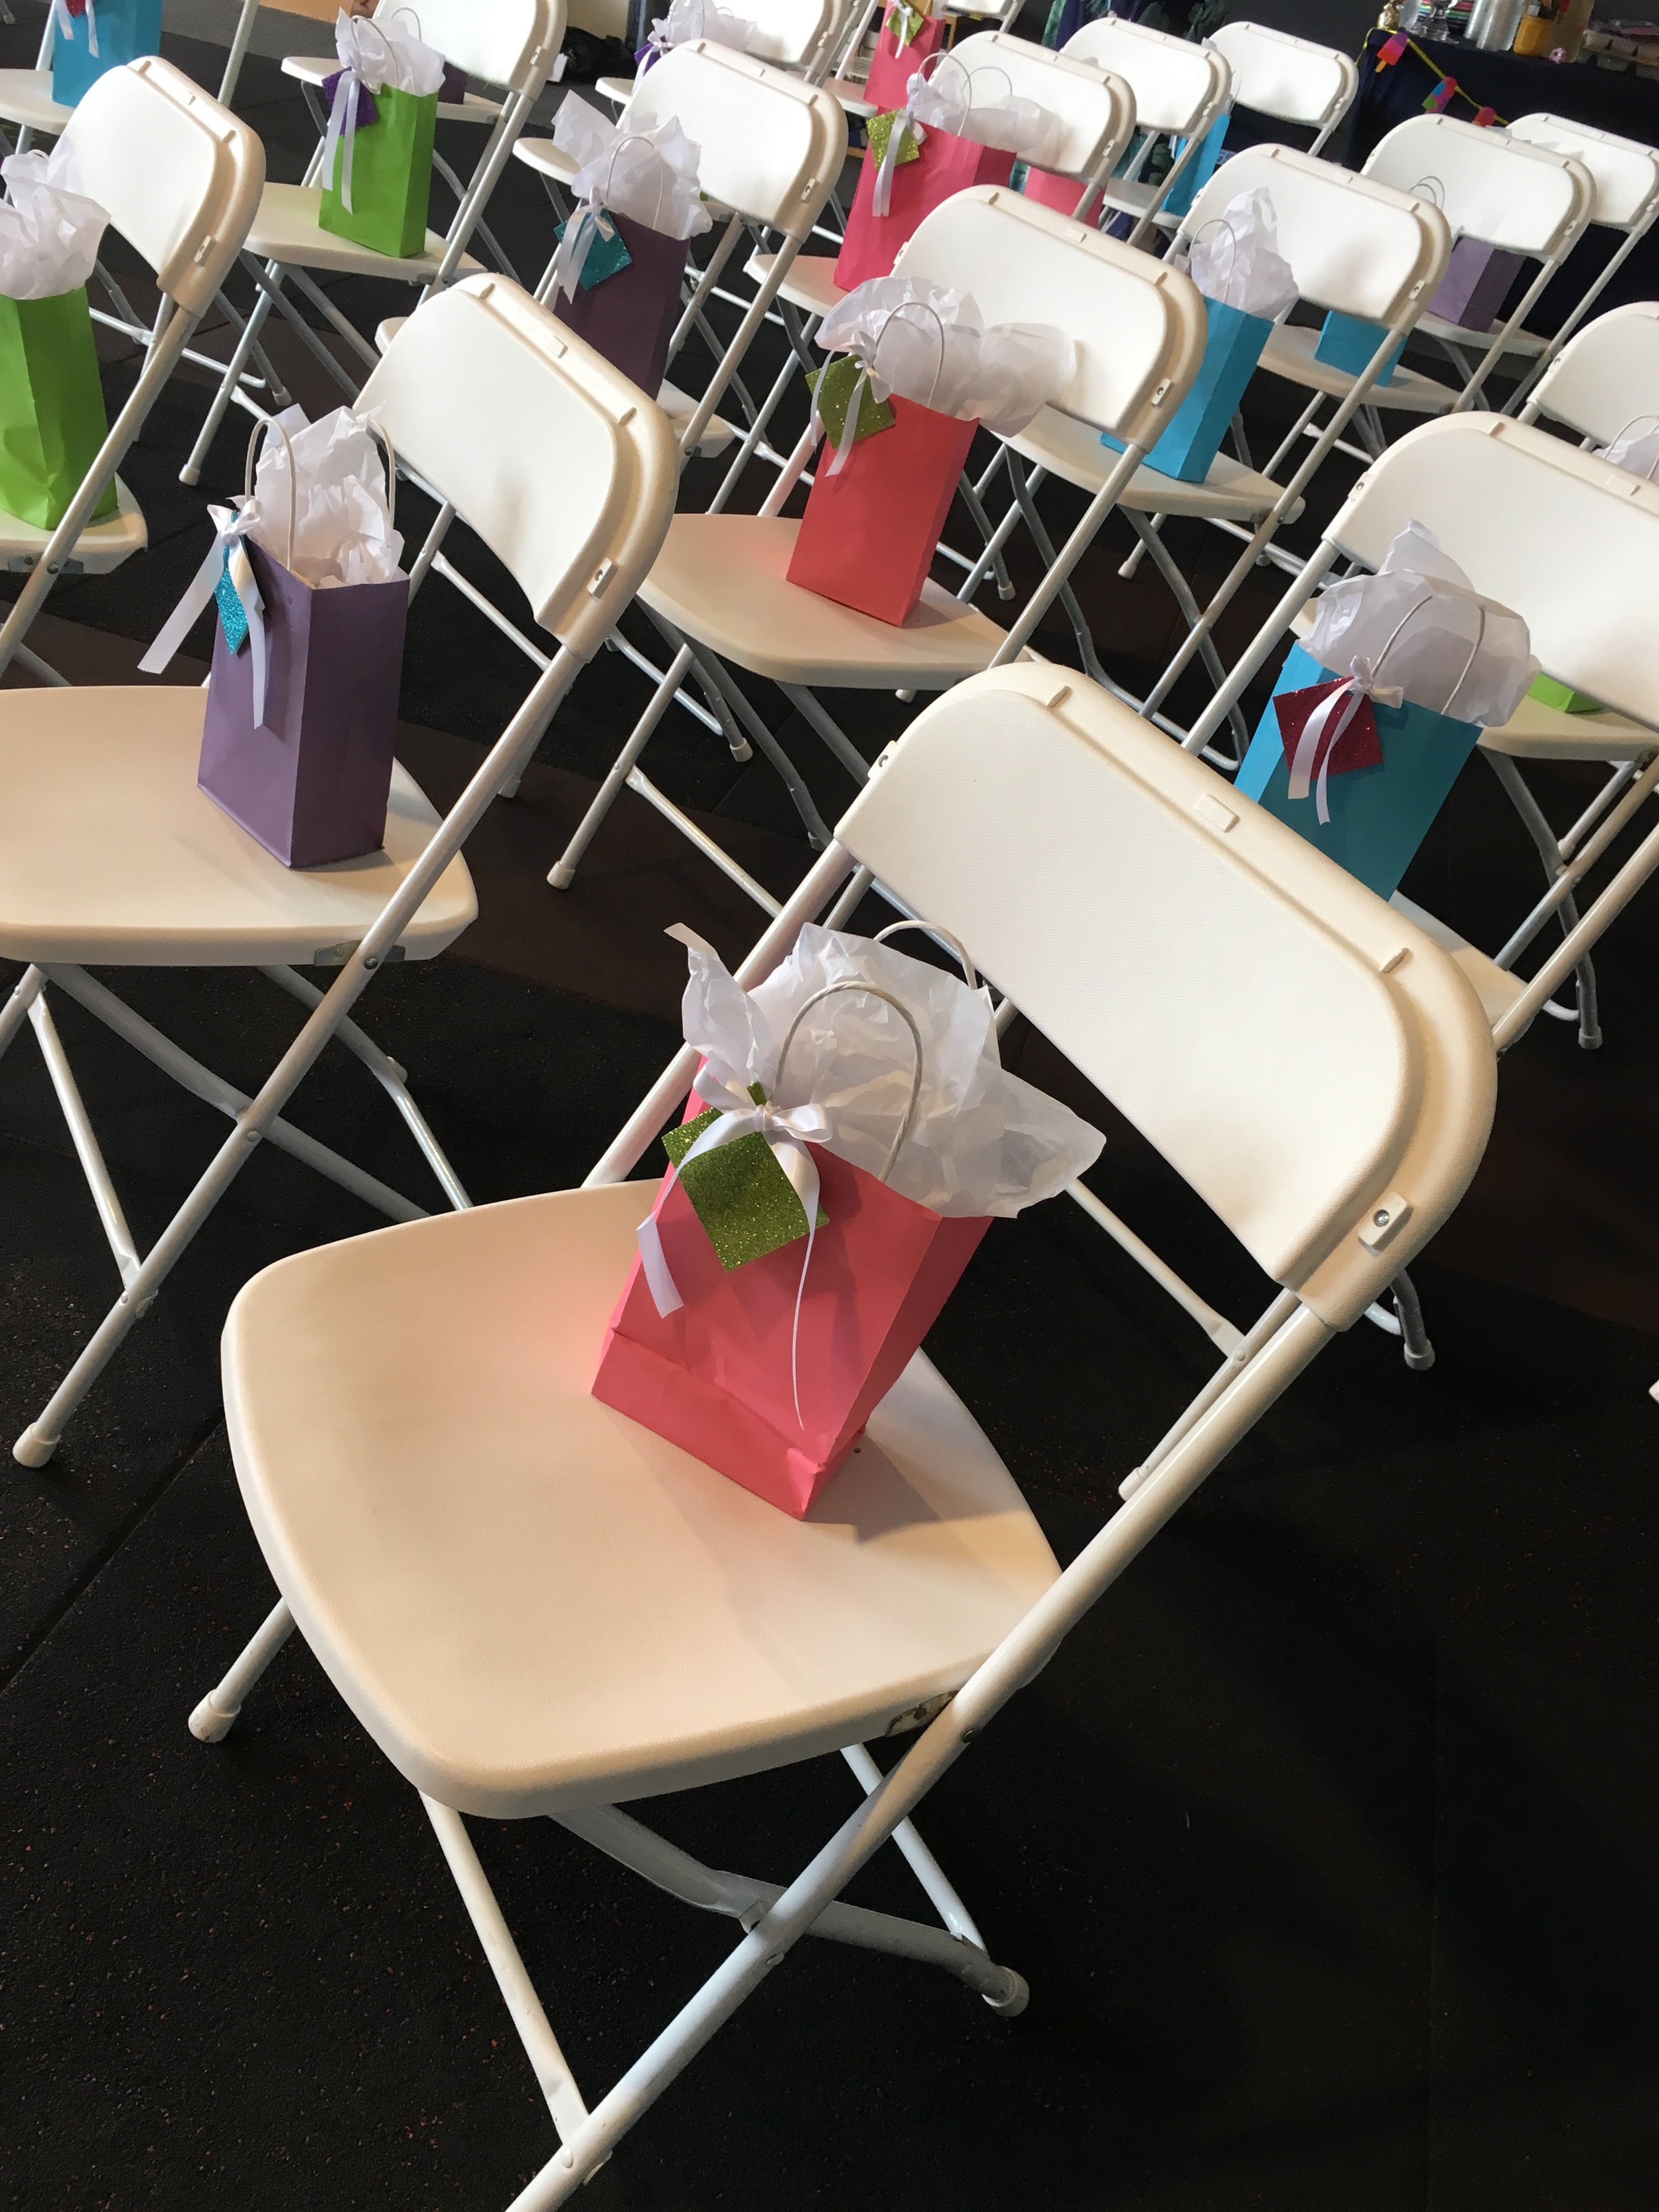 CWC Working with Your Event